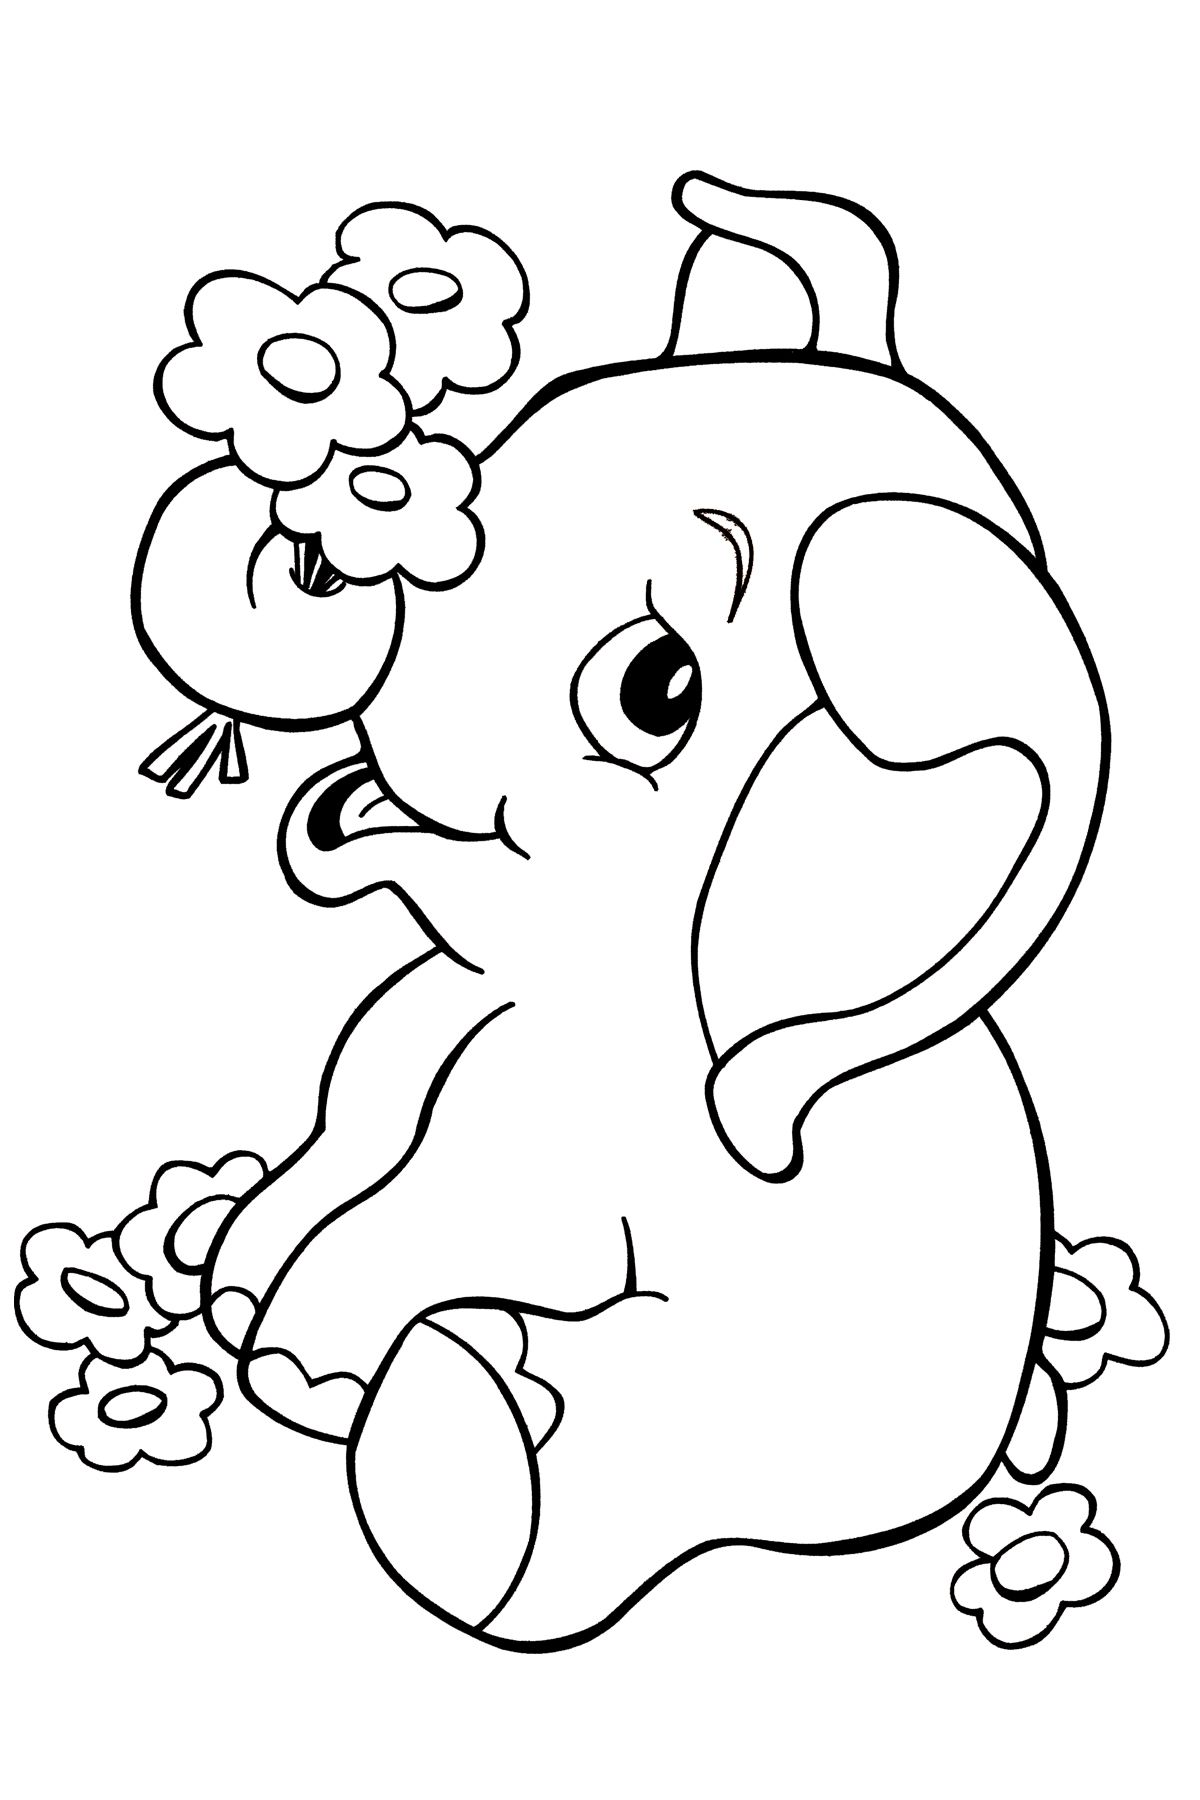 Baby Elephant Elephant Coloring Page Jungle Coloring Pages Coloring Books